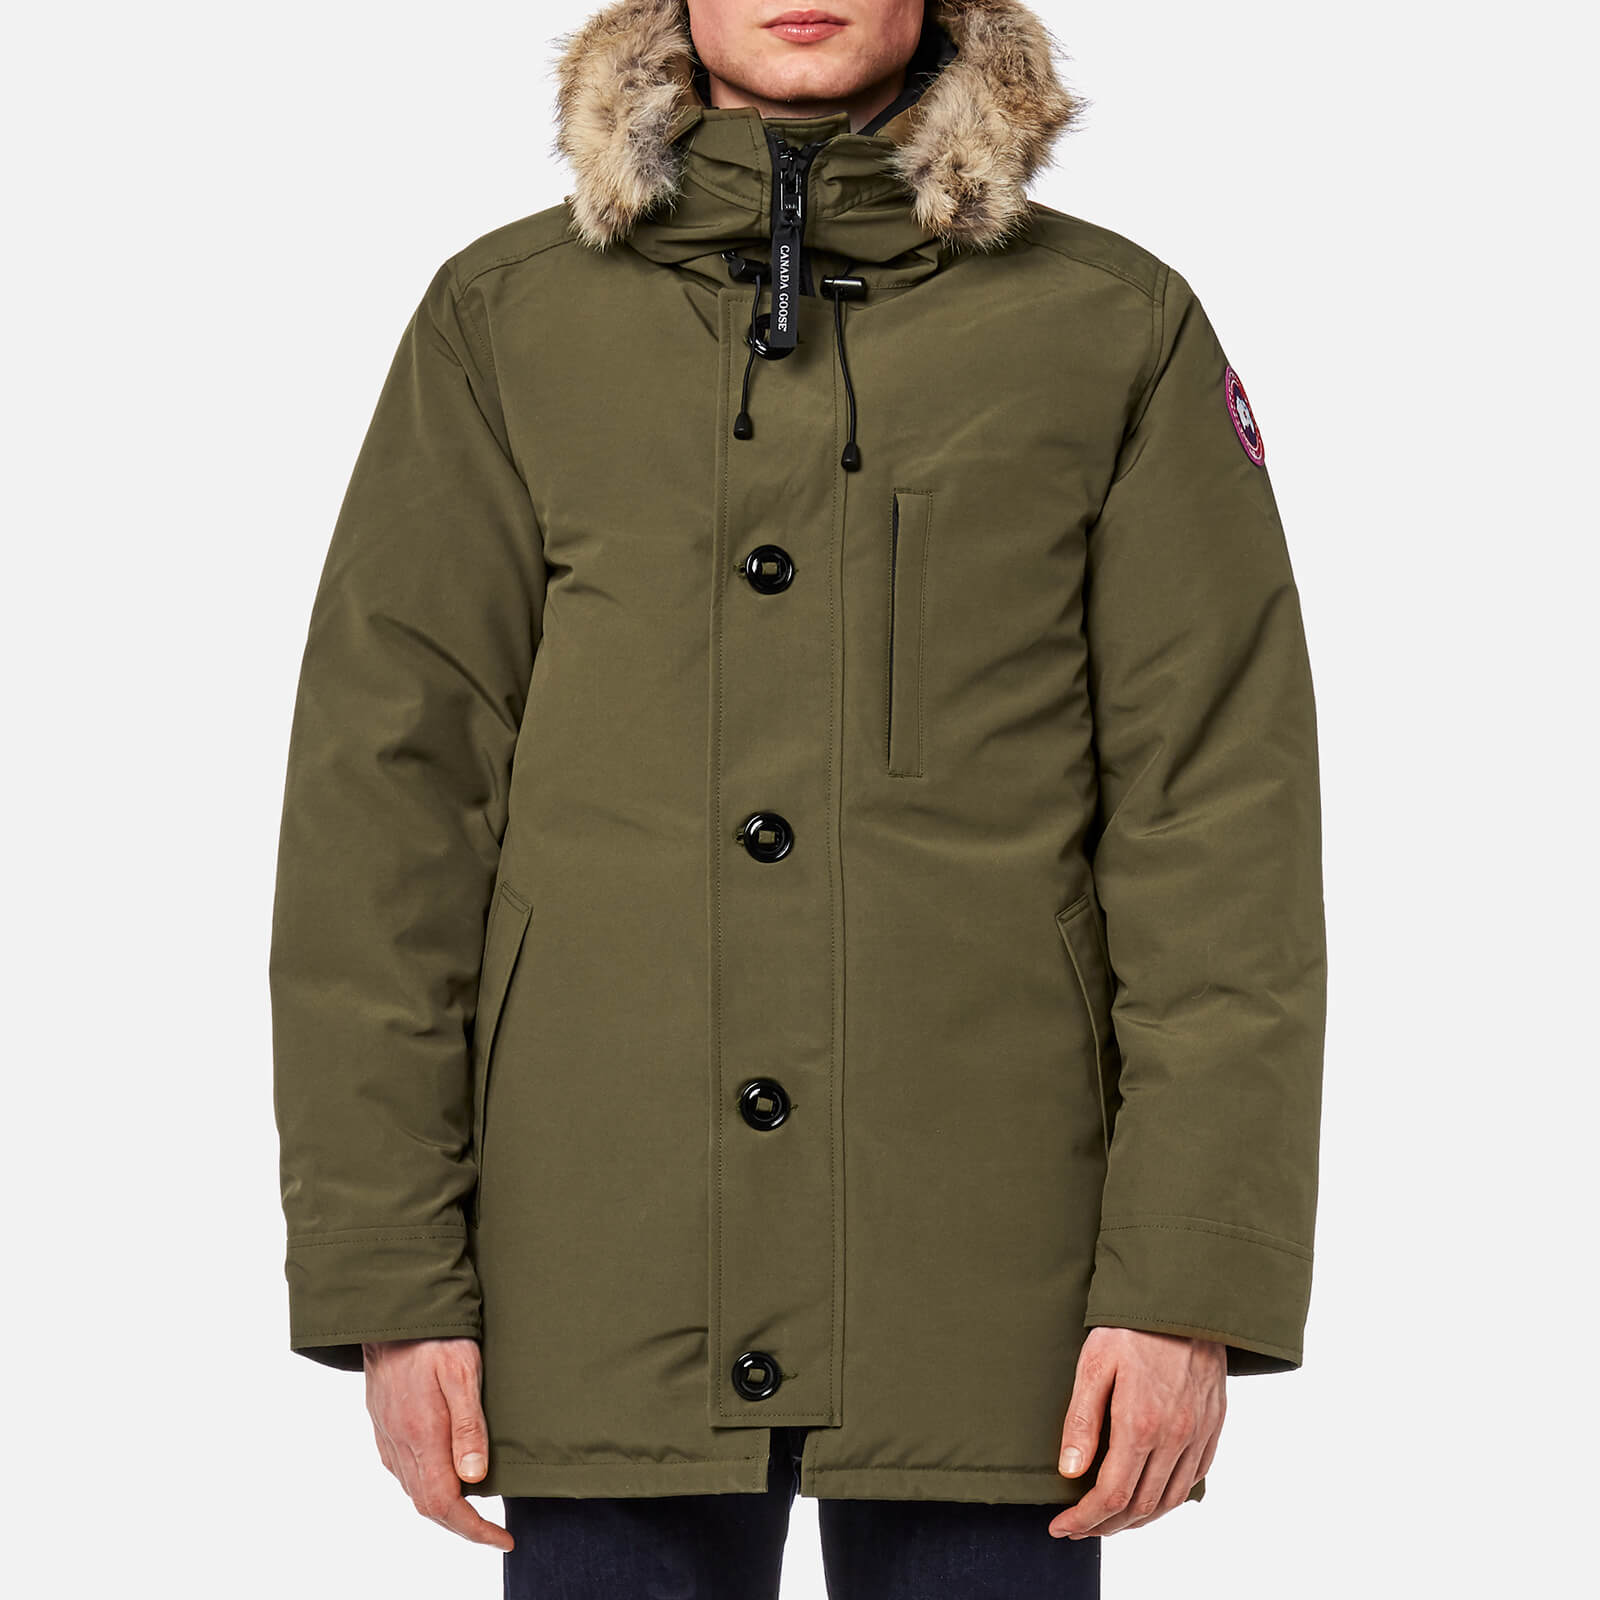 4c18620c932 Canada Goose Men's Chateau Parka - Military Green